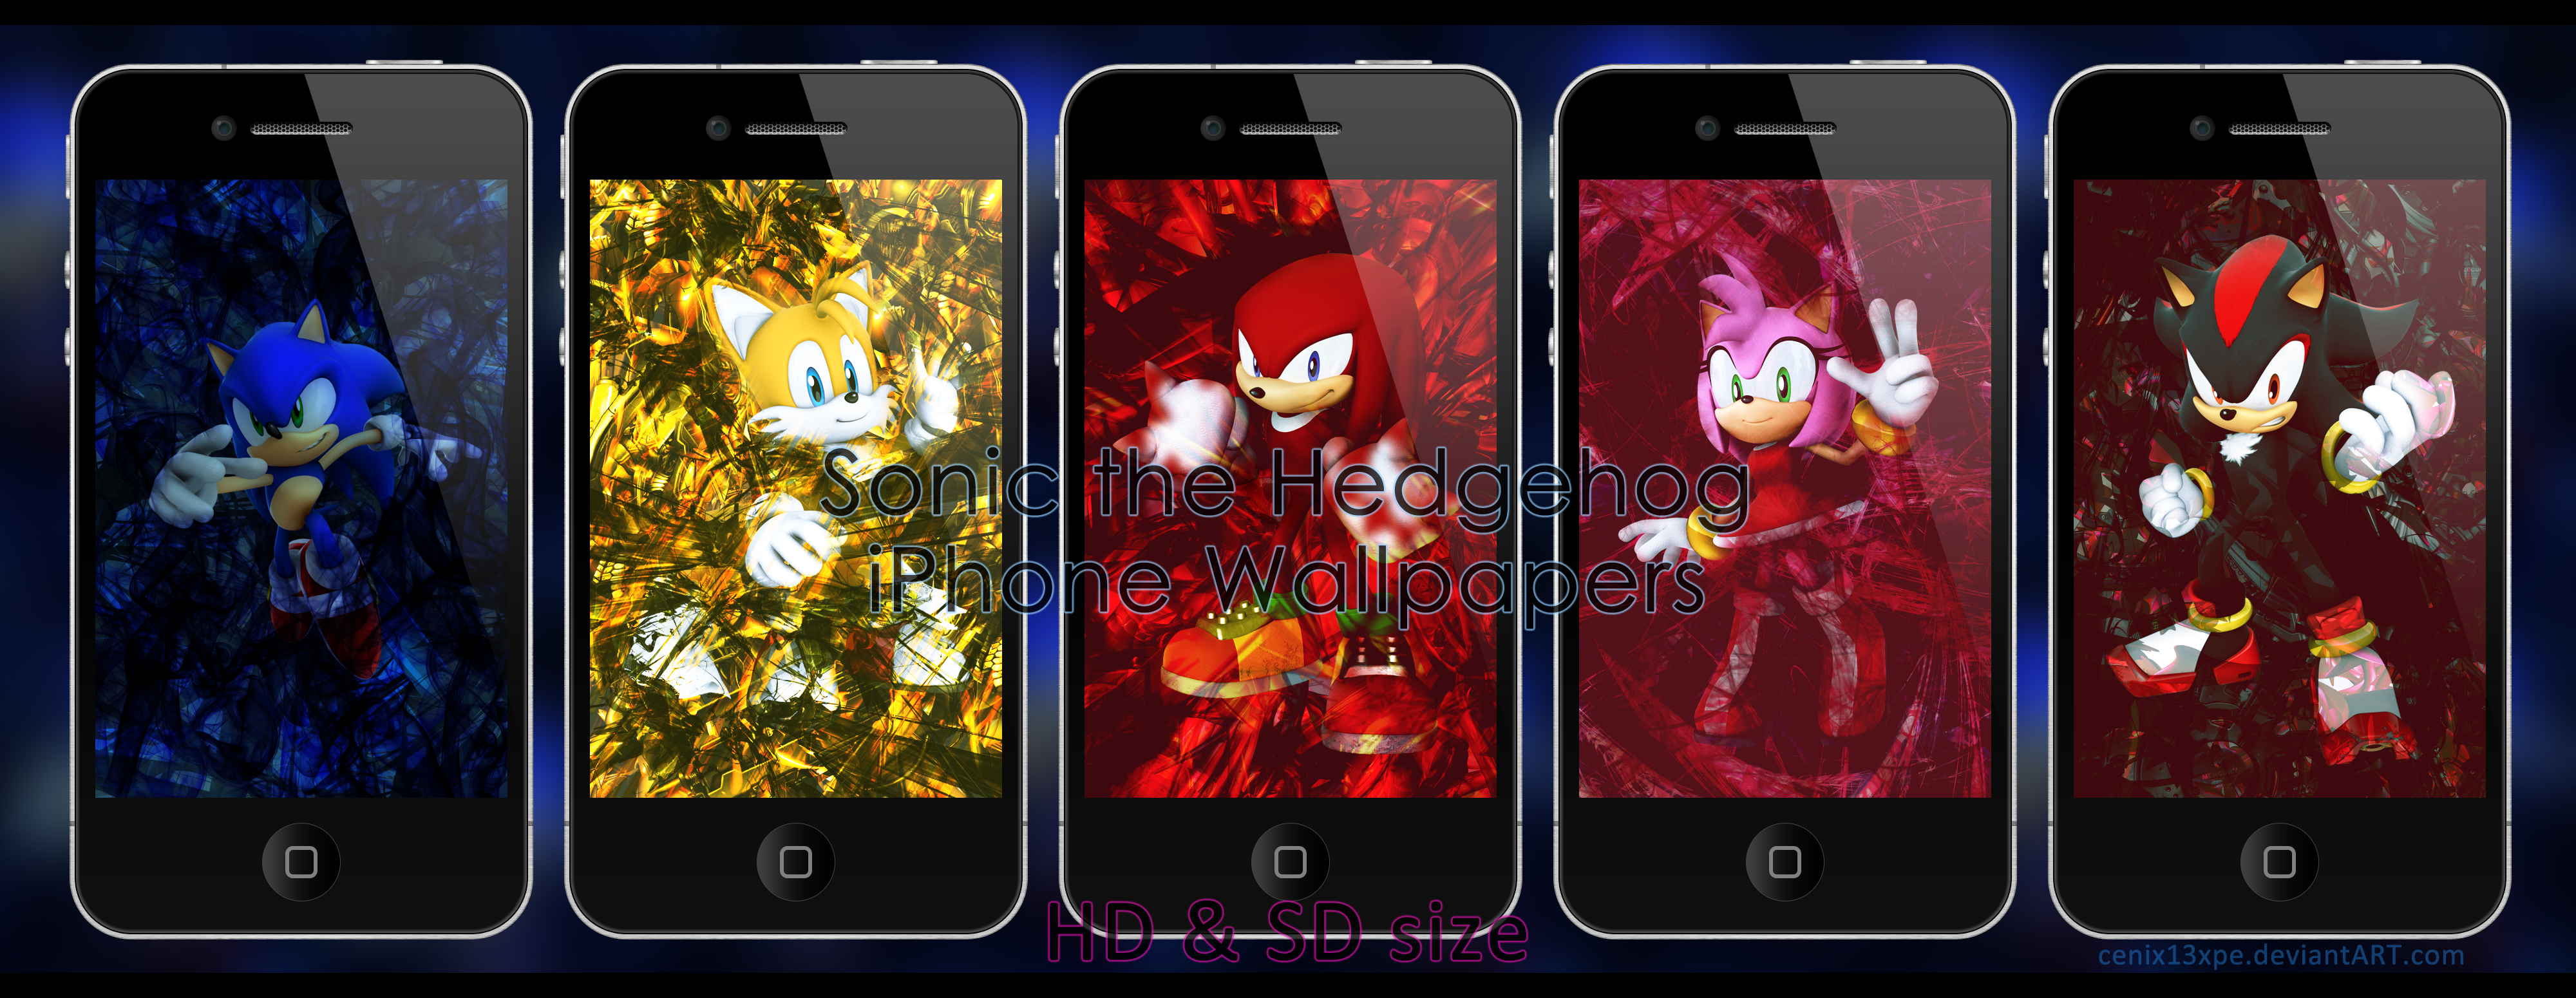 sonic iphone wallpapers by dernosada on deviantart